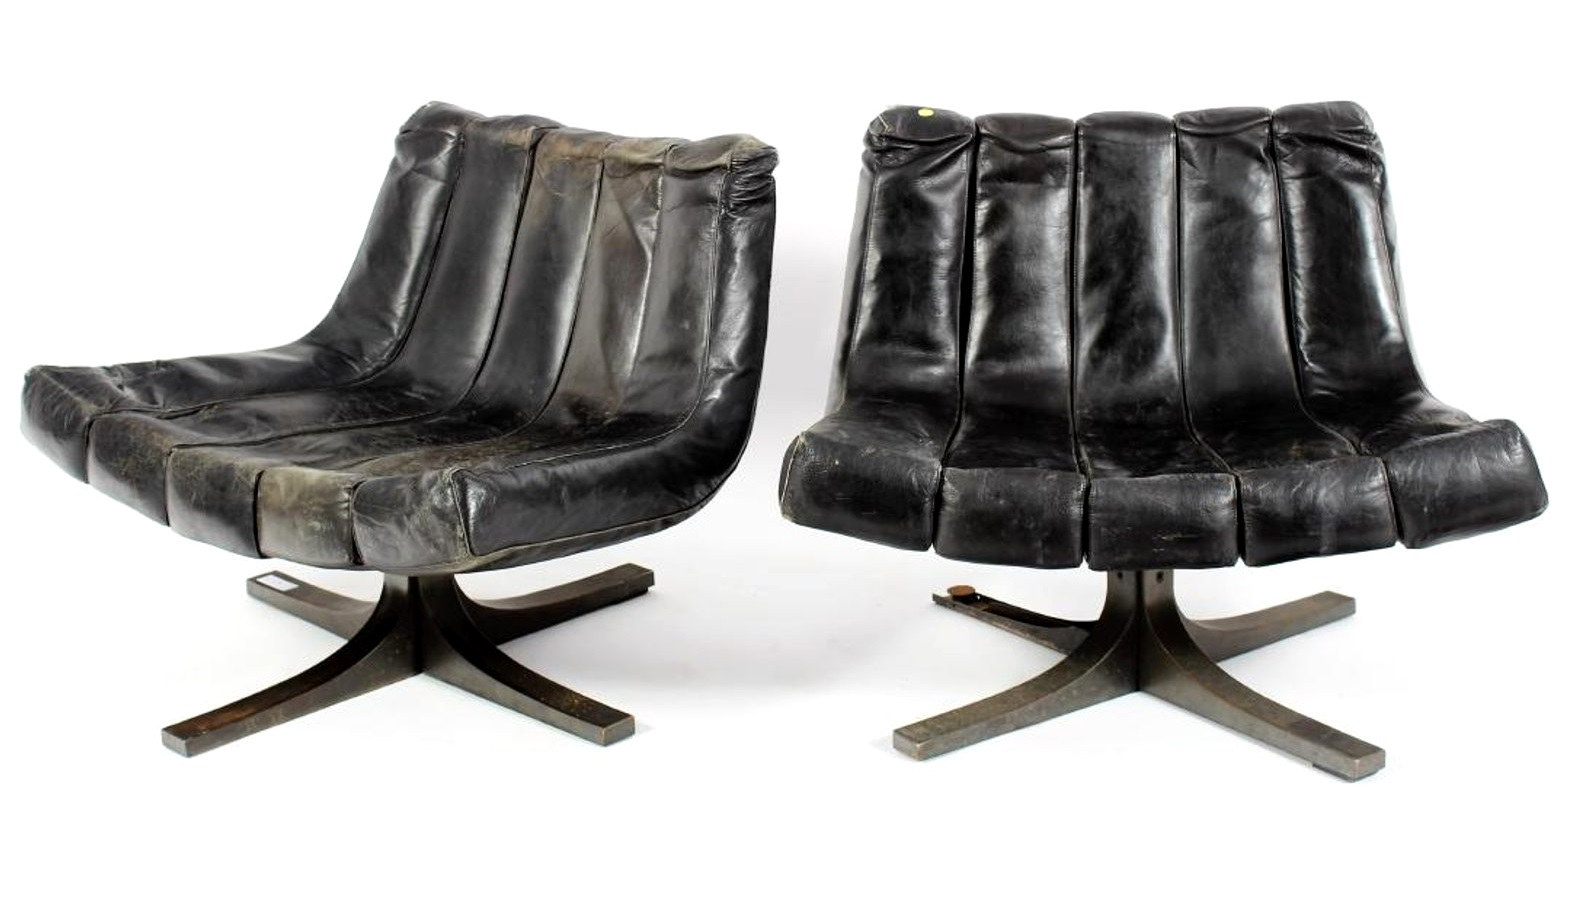 Javier Carvajal, Pair Of Lounge Chairs. Sold For $3,750